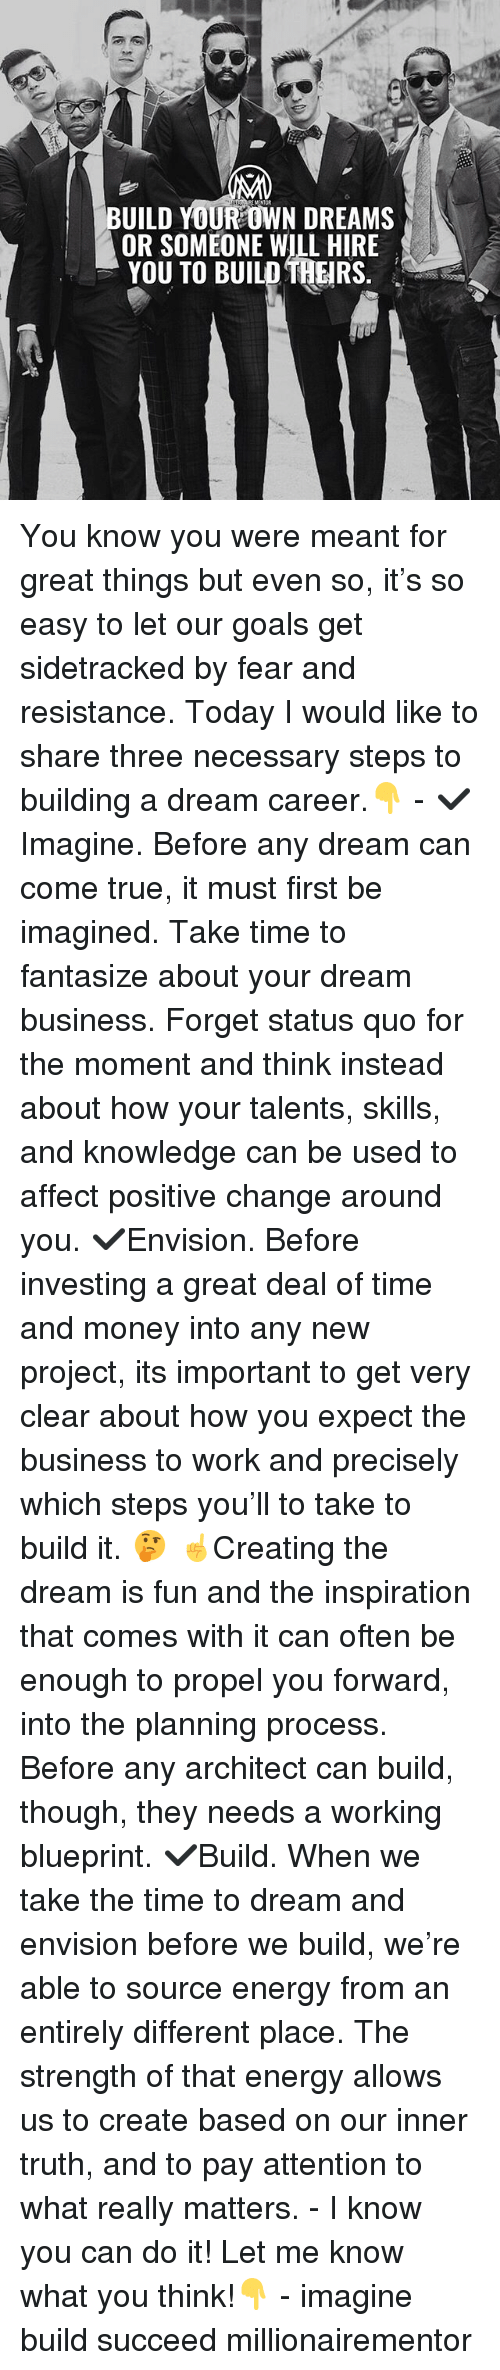 A Dream, Energy, and Goals: UILD YOUR OWN DREAMs  OR SOMEONE WILL HIRE  YOU TO BUILD THEIRS You know you were meant for great things but even so, it's so easy to let our goals get sidetracked by fear and resistance. Today I would like to share three necessary steps to building a dream career.👇 - ✔️Imagine. Before any dream can come true, it must first be imagined. Take time to fantasize about your dream business. Forget status quo for the moment and think instead about how your talents, skills, and knowledge can be used to affect positive change around you. ✔️Envision. Before investing a great deal of time and money into any new project, its important to get very clear about how you expect the business to work and precisely which steps you'll to take to build it. 🤔 ☝️Creating the dream is fun and the inspiration that comes with it can often be enough to propel you forward, into the planning process. Before any architect can build, though, they needs a working blueprint. ✔️Build. When we take the time to dream and envision before we build, we're able to source energy from an entirely different place. The strength of that energy allows us to create based on our inner truth, and to pay attention to what really matters. - I know you can do it! Let me know what you think!👇 - imagine build succeed millionairementor